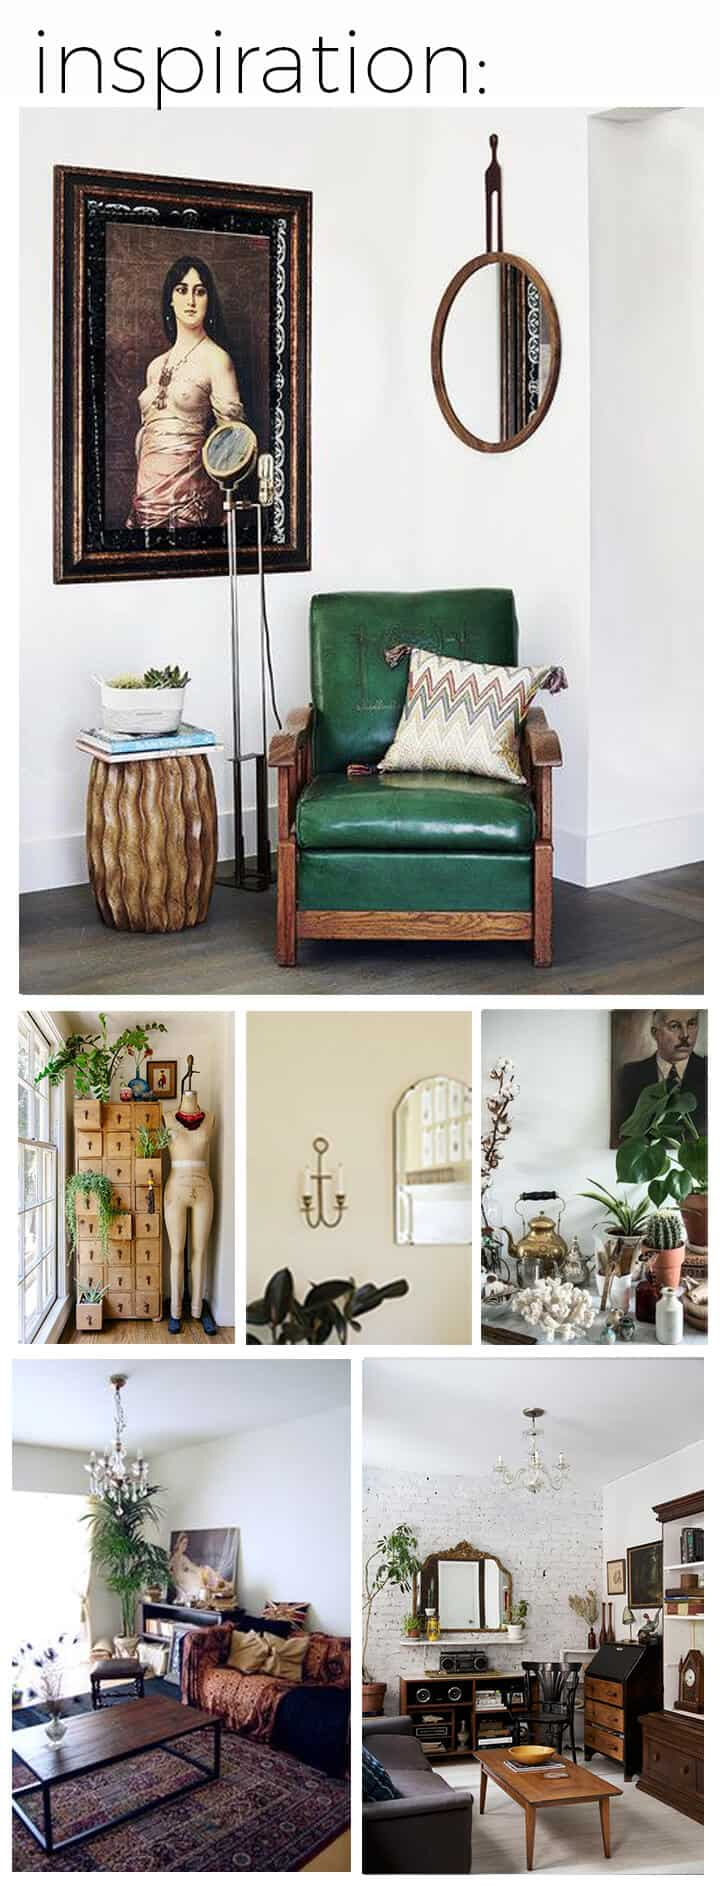 emily_henderson_makeover_takeover_jessica_isaac_inspiration_720